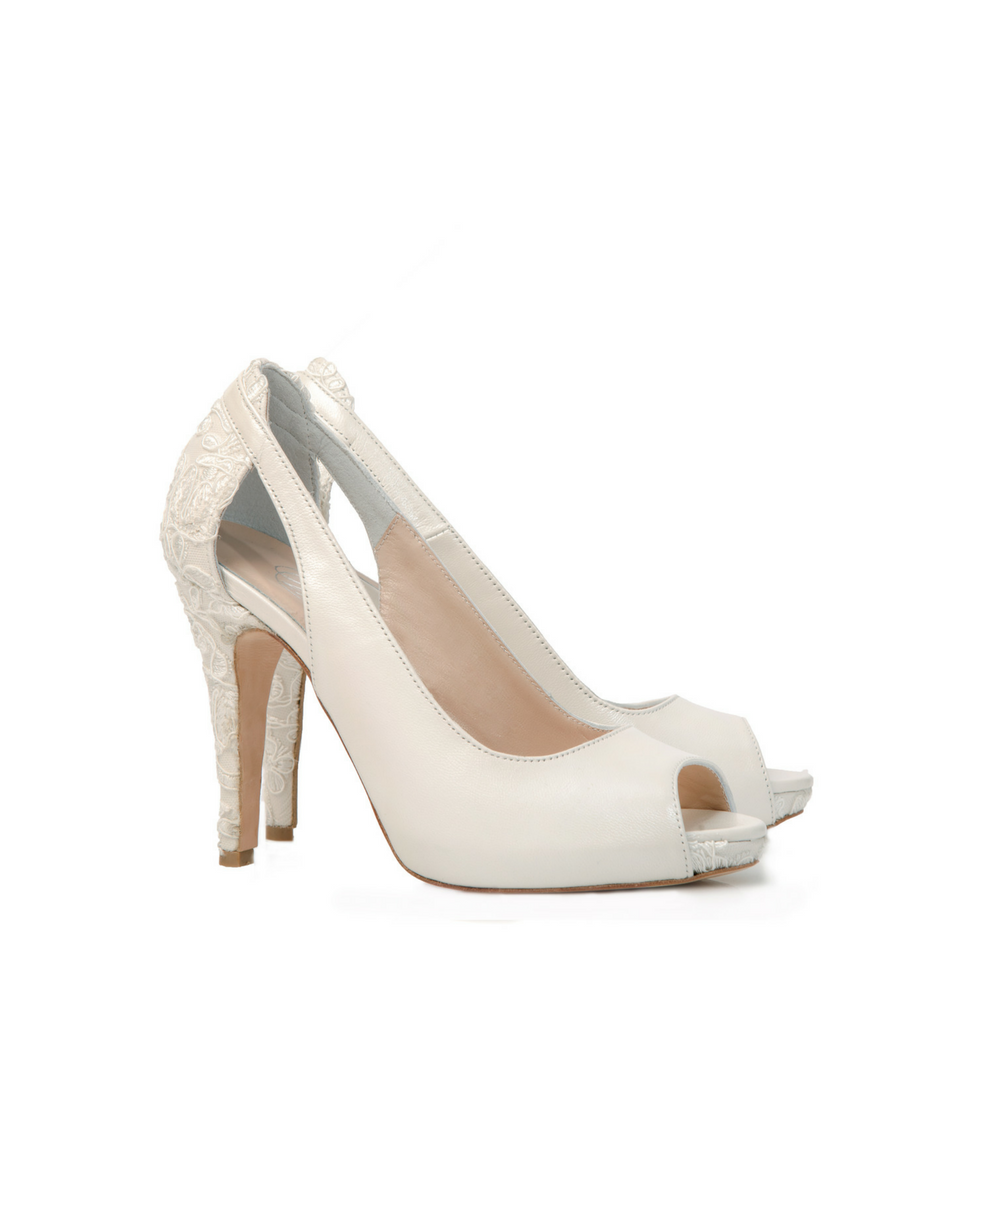 Bridal Peep Toe Mid High With Lace Details Mod.2382